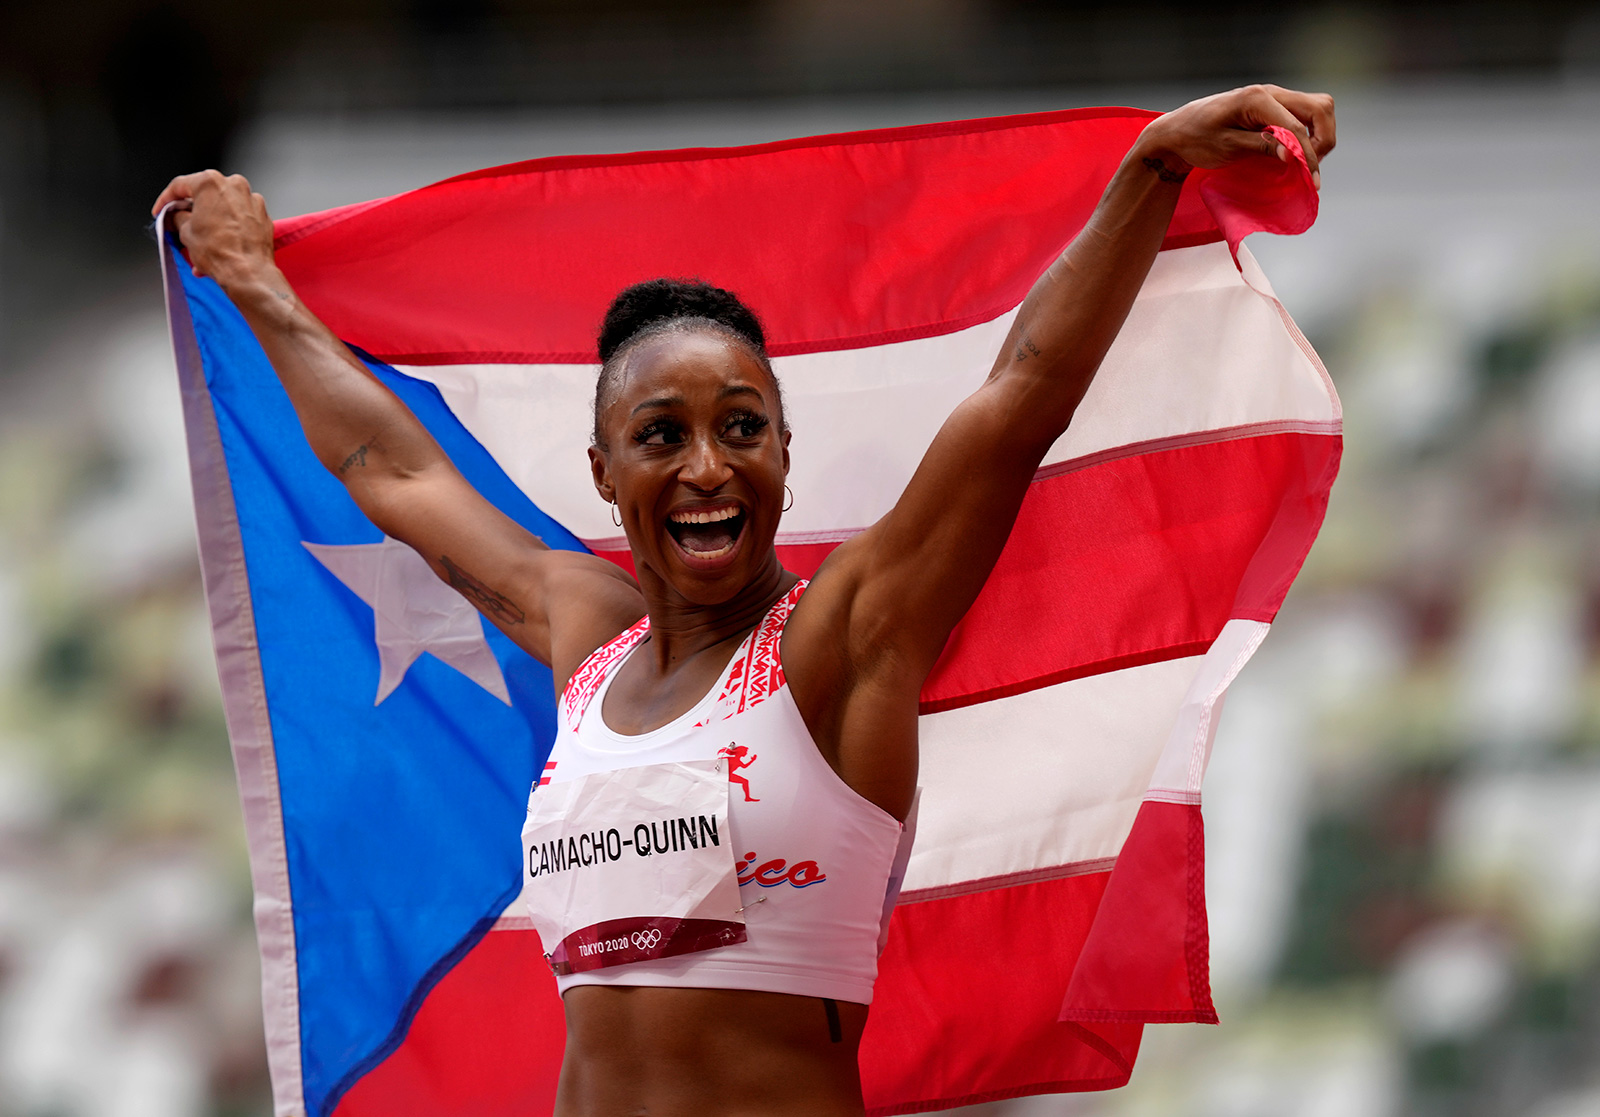 Puerto Rico's Jasmine Camacho-Quinn celebrates after winning the gold in the 100 meter hurdles final on Monday.